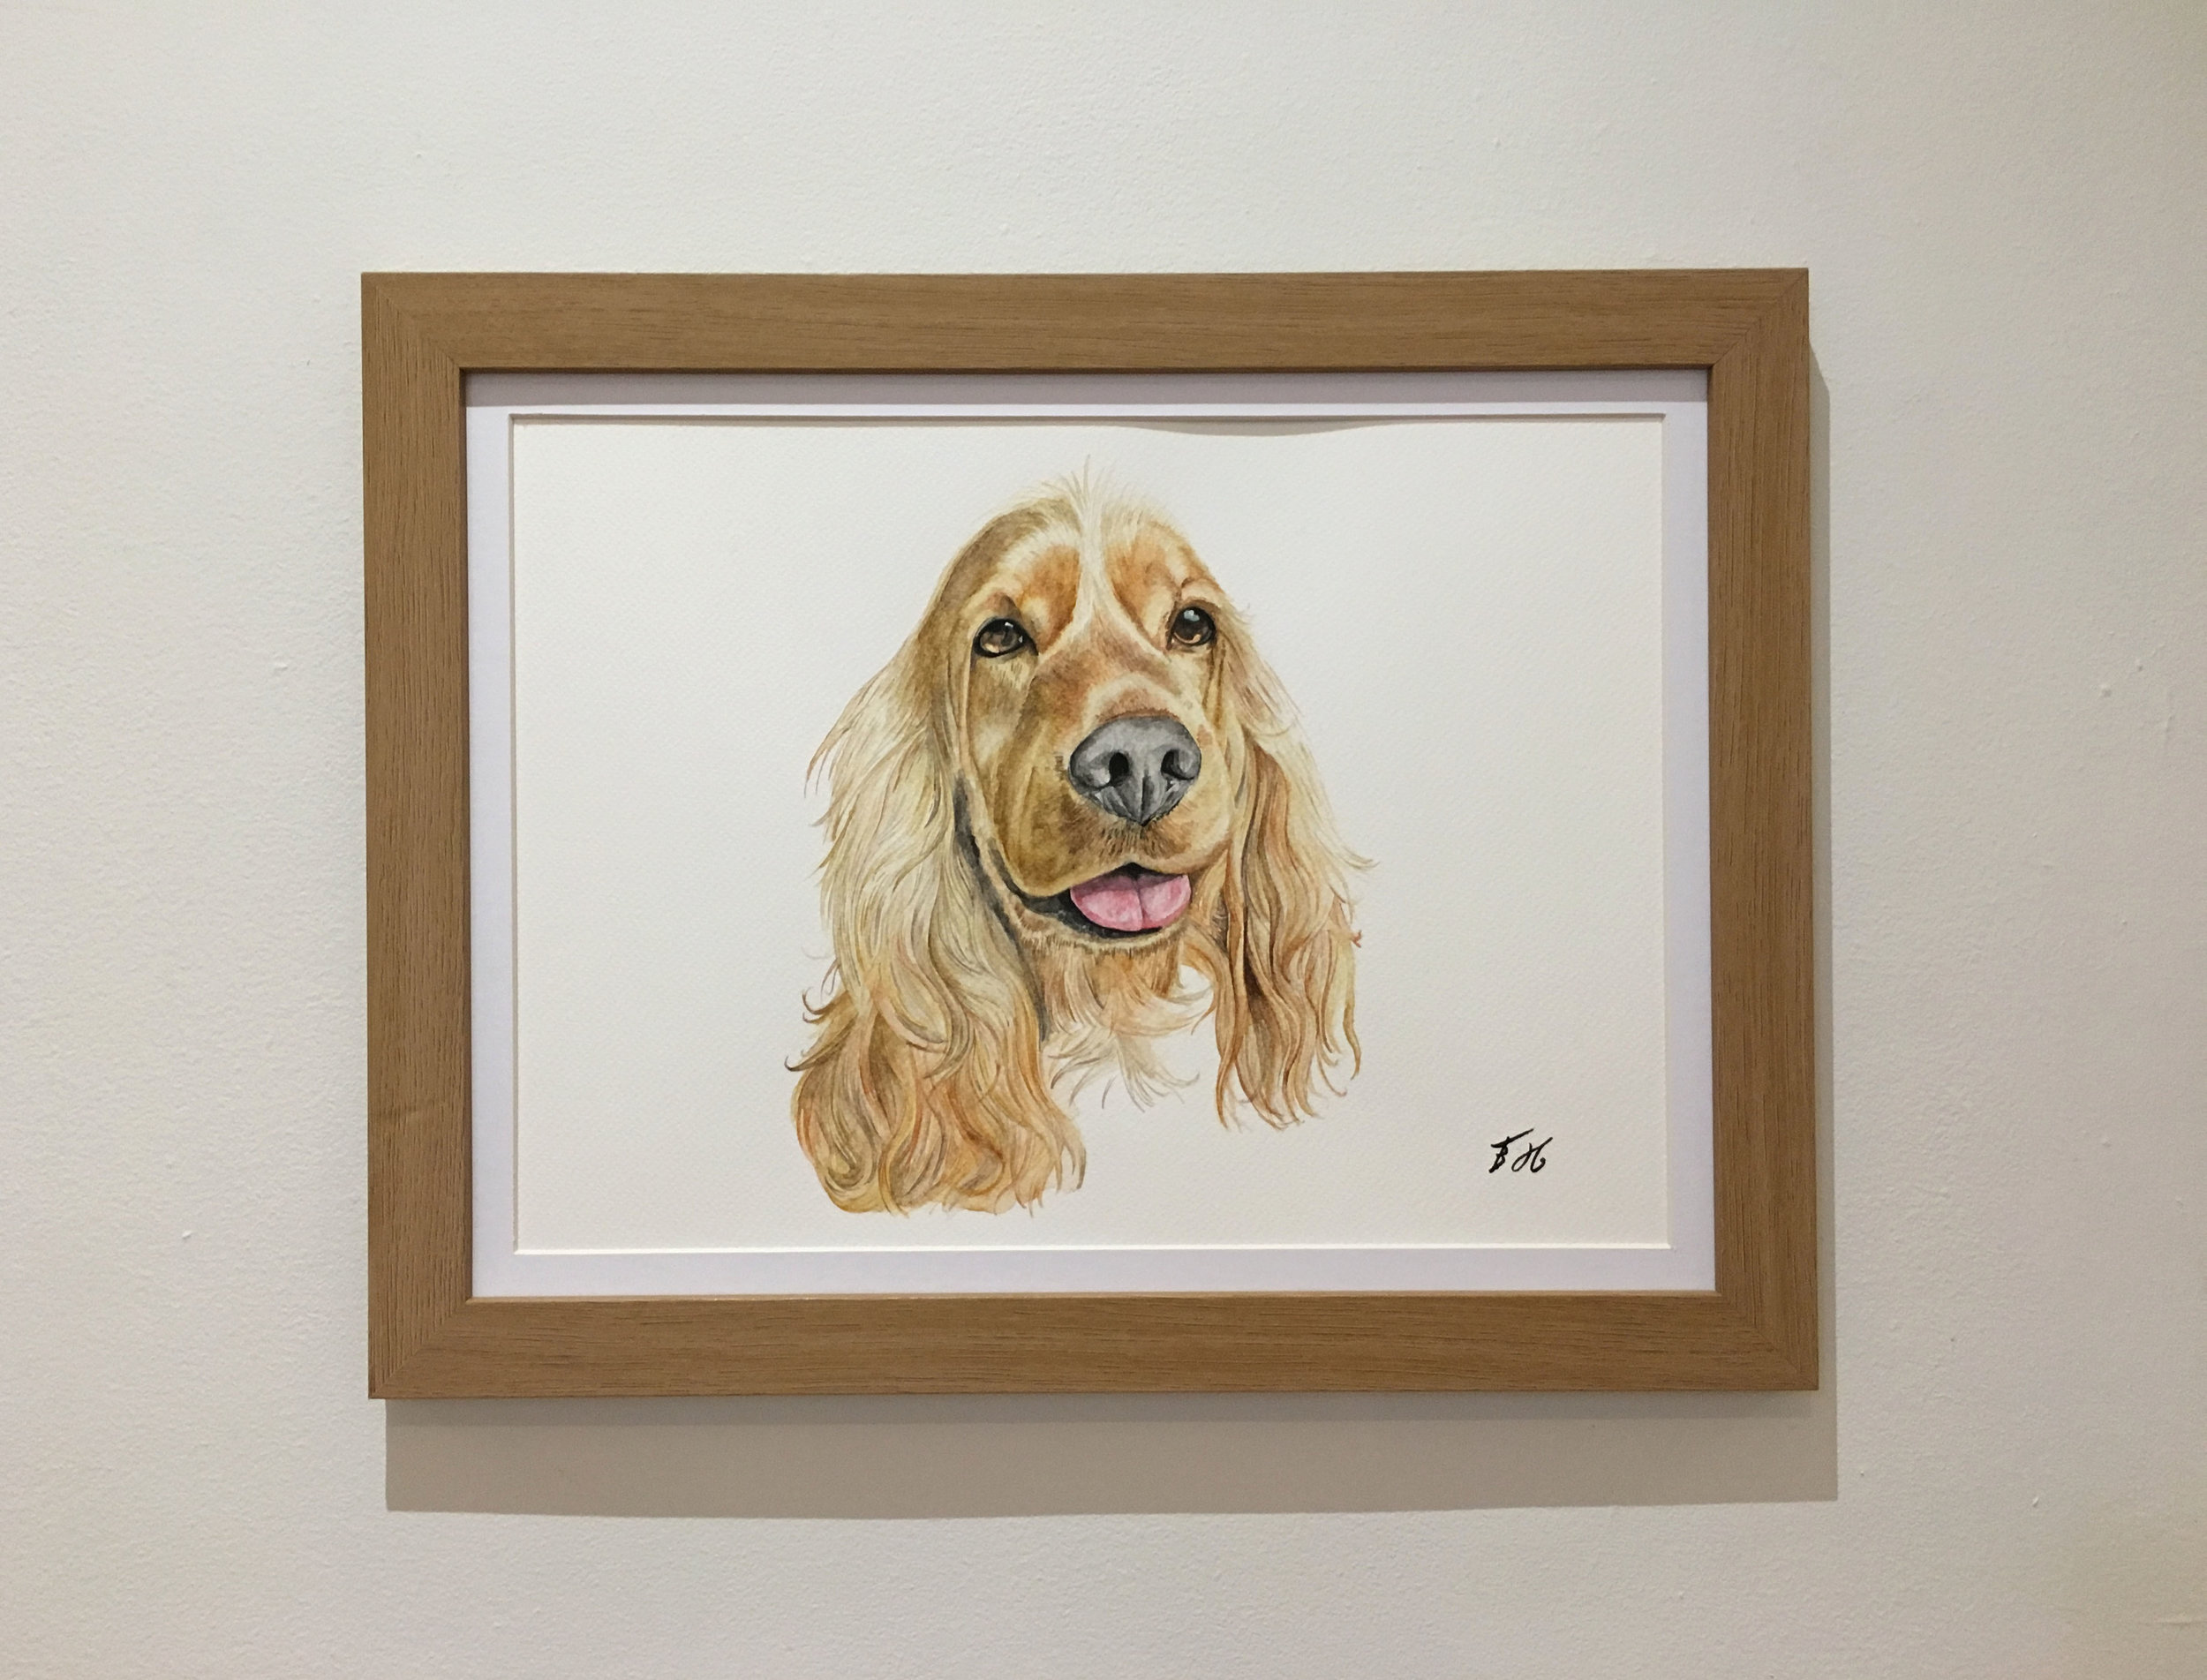 leighs dog framed.jpg